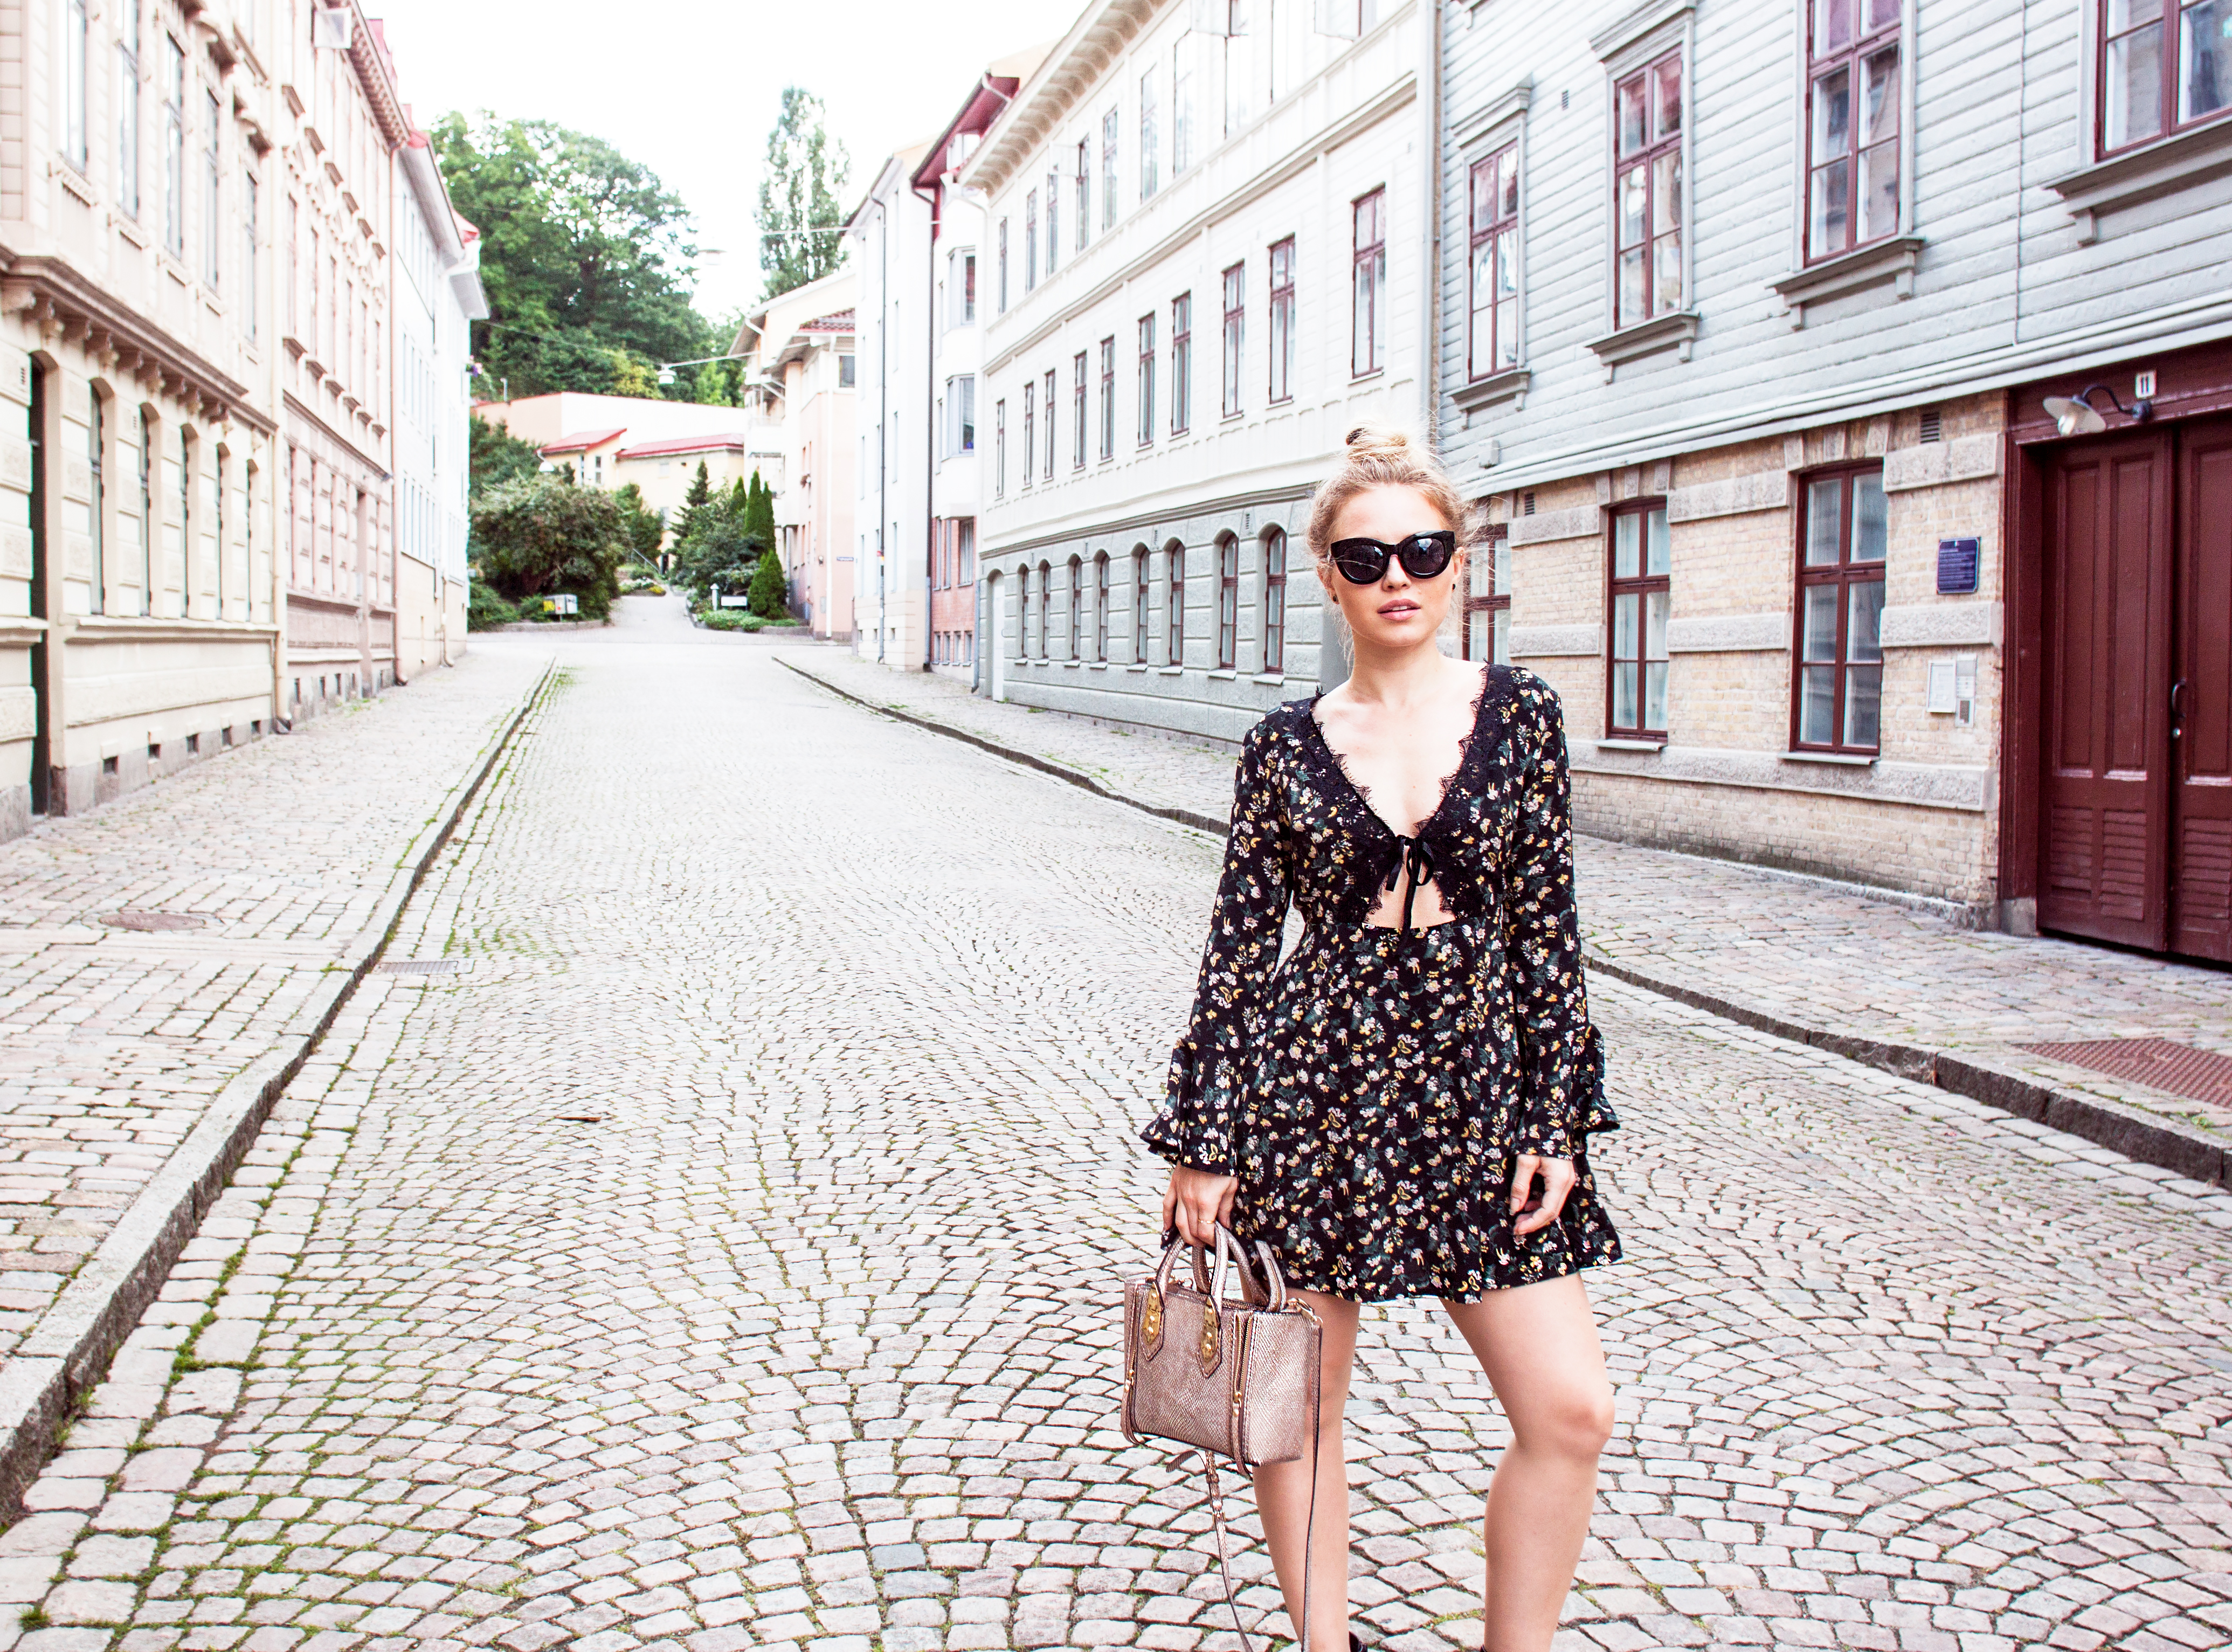 asos dress, asos fall dress, asos flower print dress, asos lace dress, perfect fall dress, dress lace low neckline, sweden, gothenburg, haga, cobblestones gothenburg, haha göteborg, höst, perfekta höstklänningen